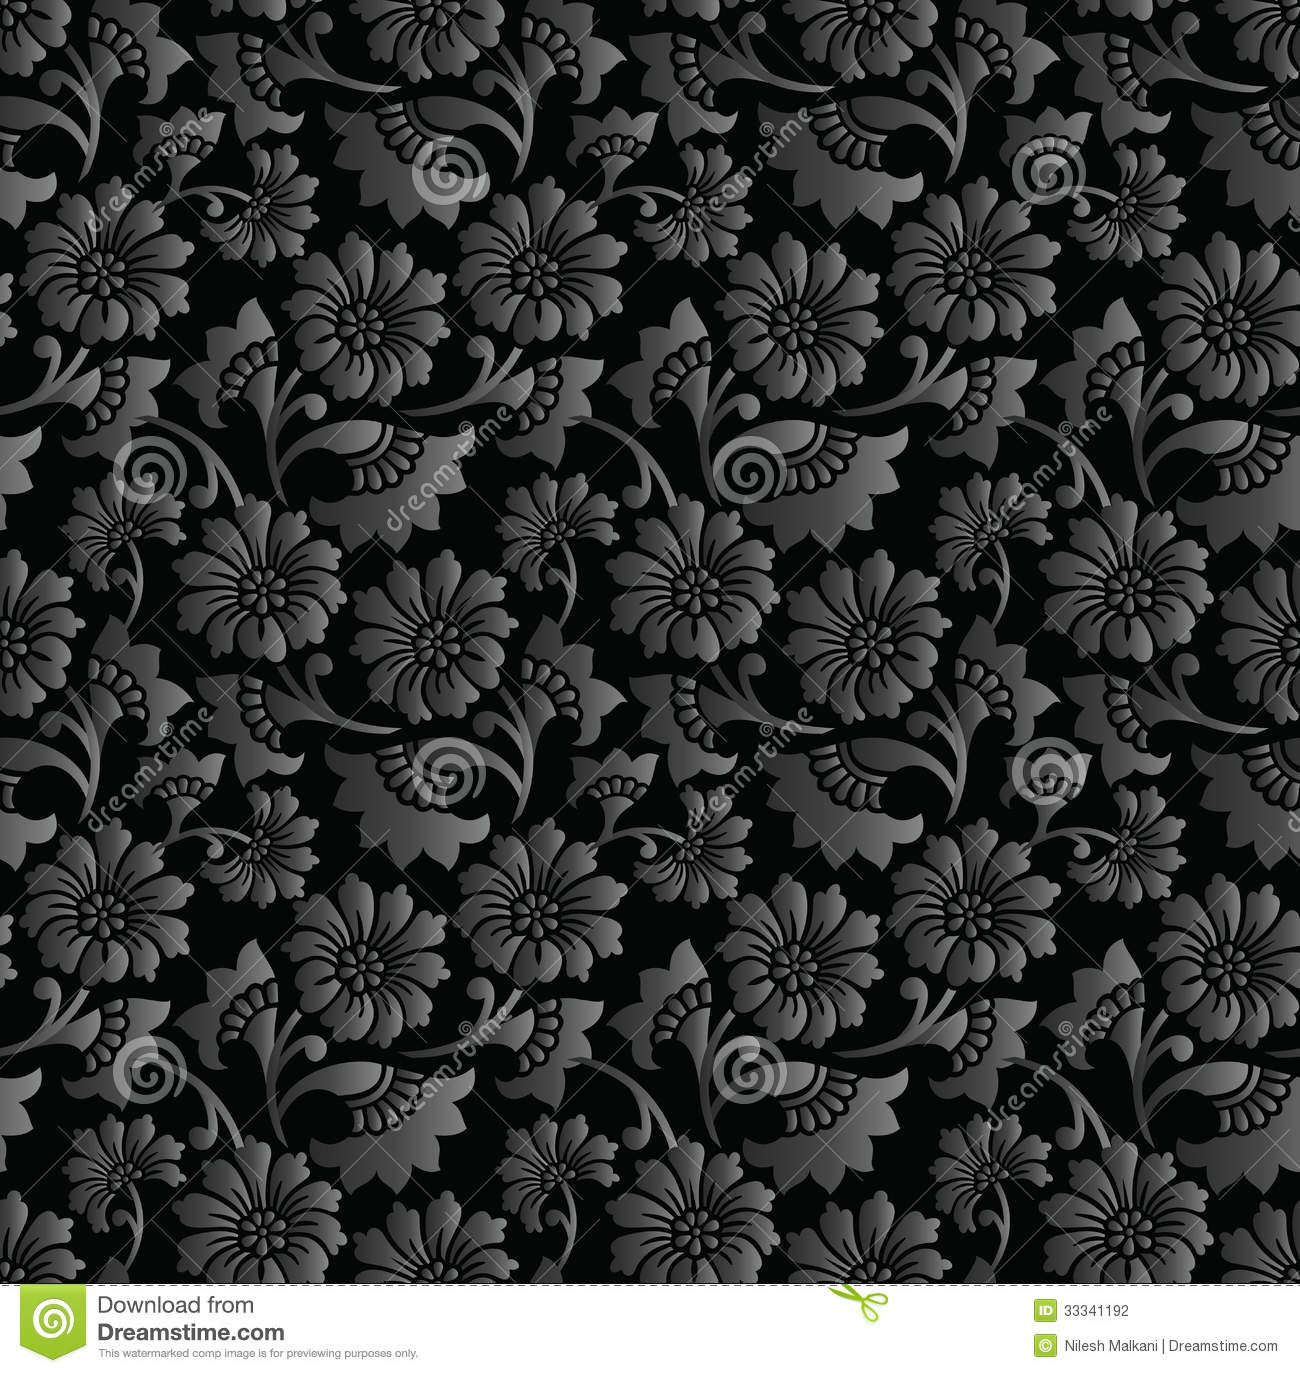 Seamless Royal Black Floral Wallpaper Stock Vector Illustration